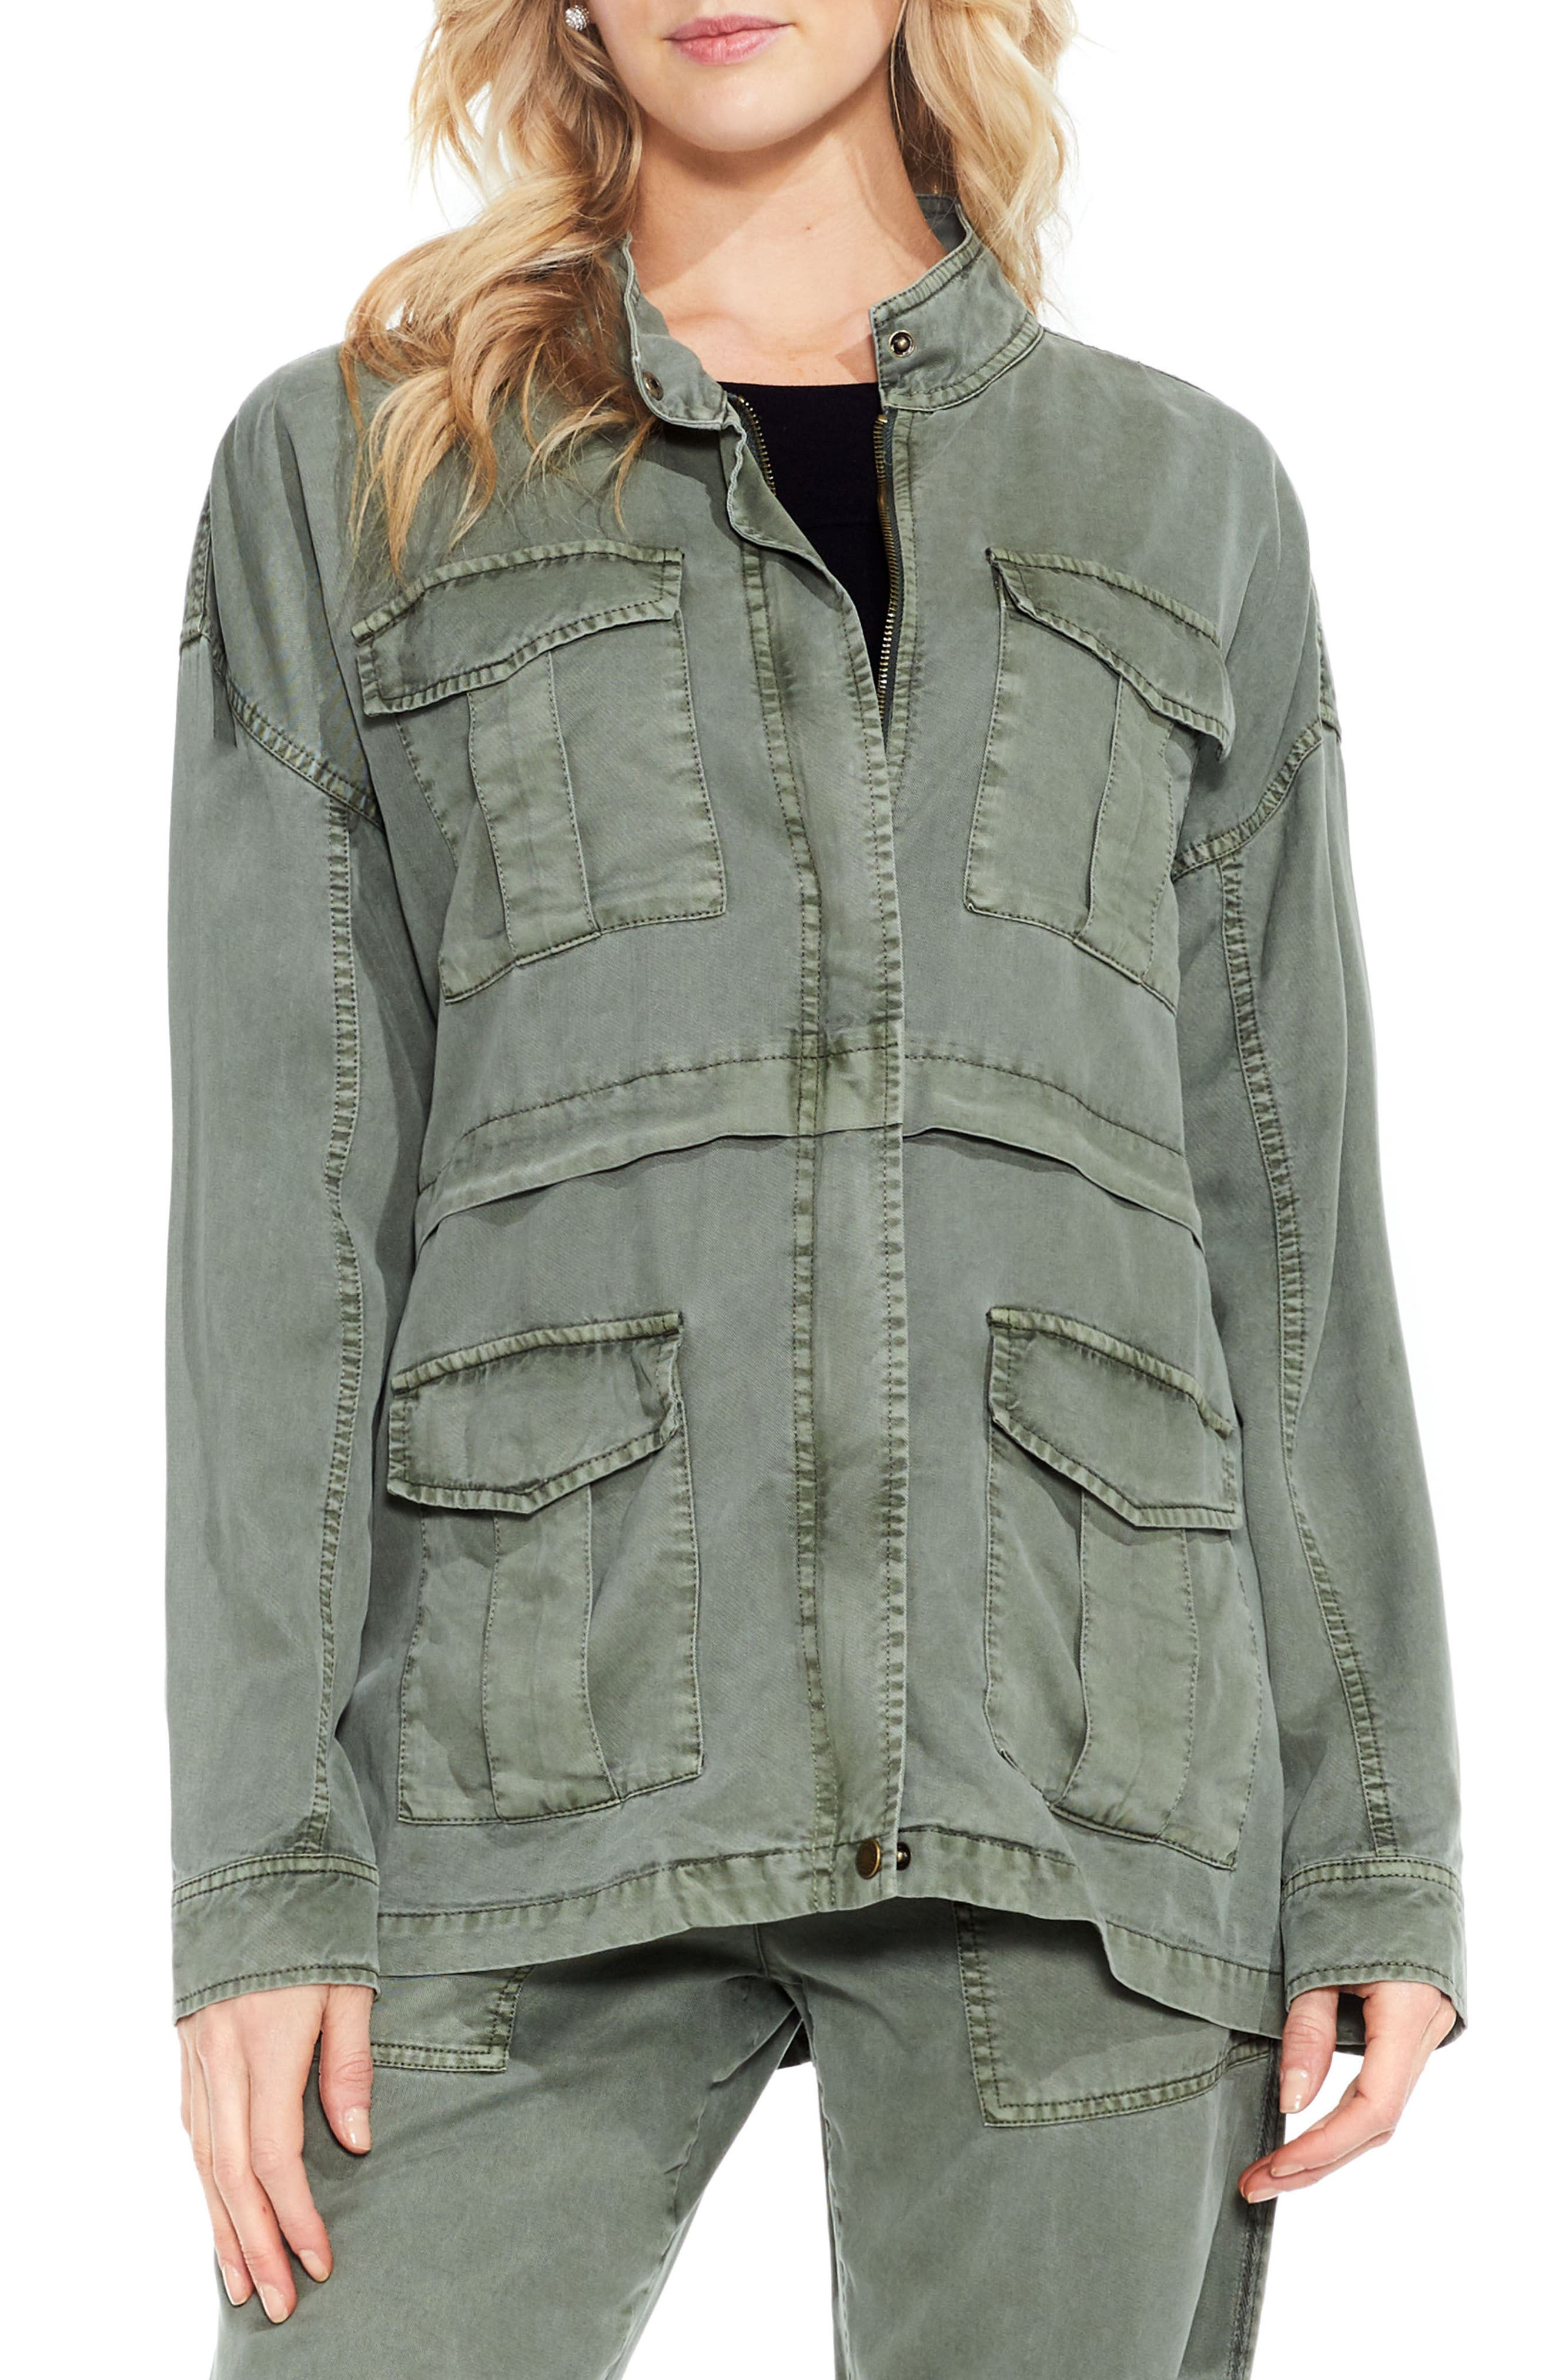 Alternate Image 1 Selected - Two by Vince Camuto Twill Cargo Jacket